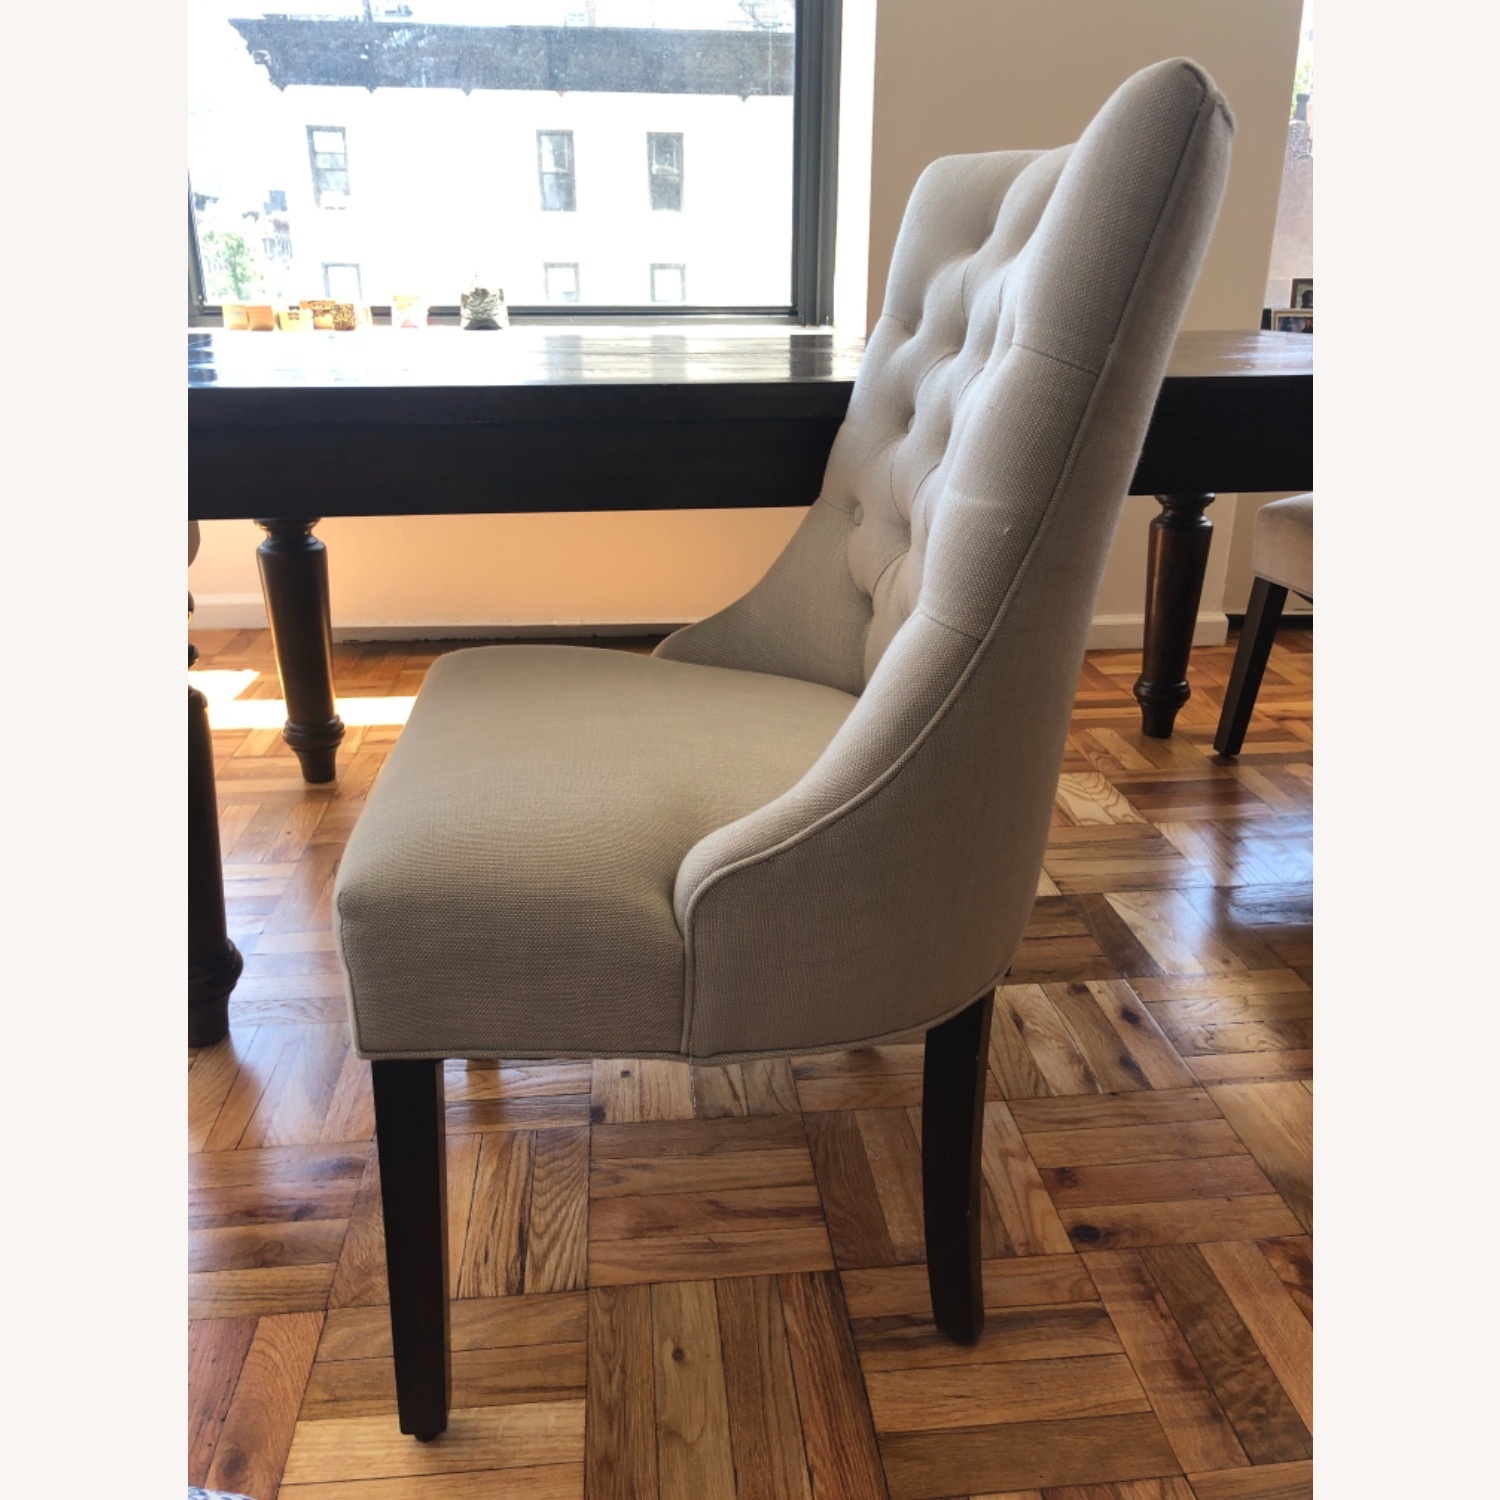 Pottery Barn Oatmeal Tufted Hayes Chair - image-9